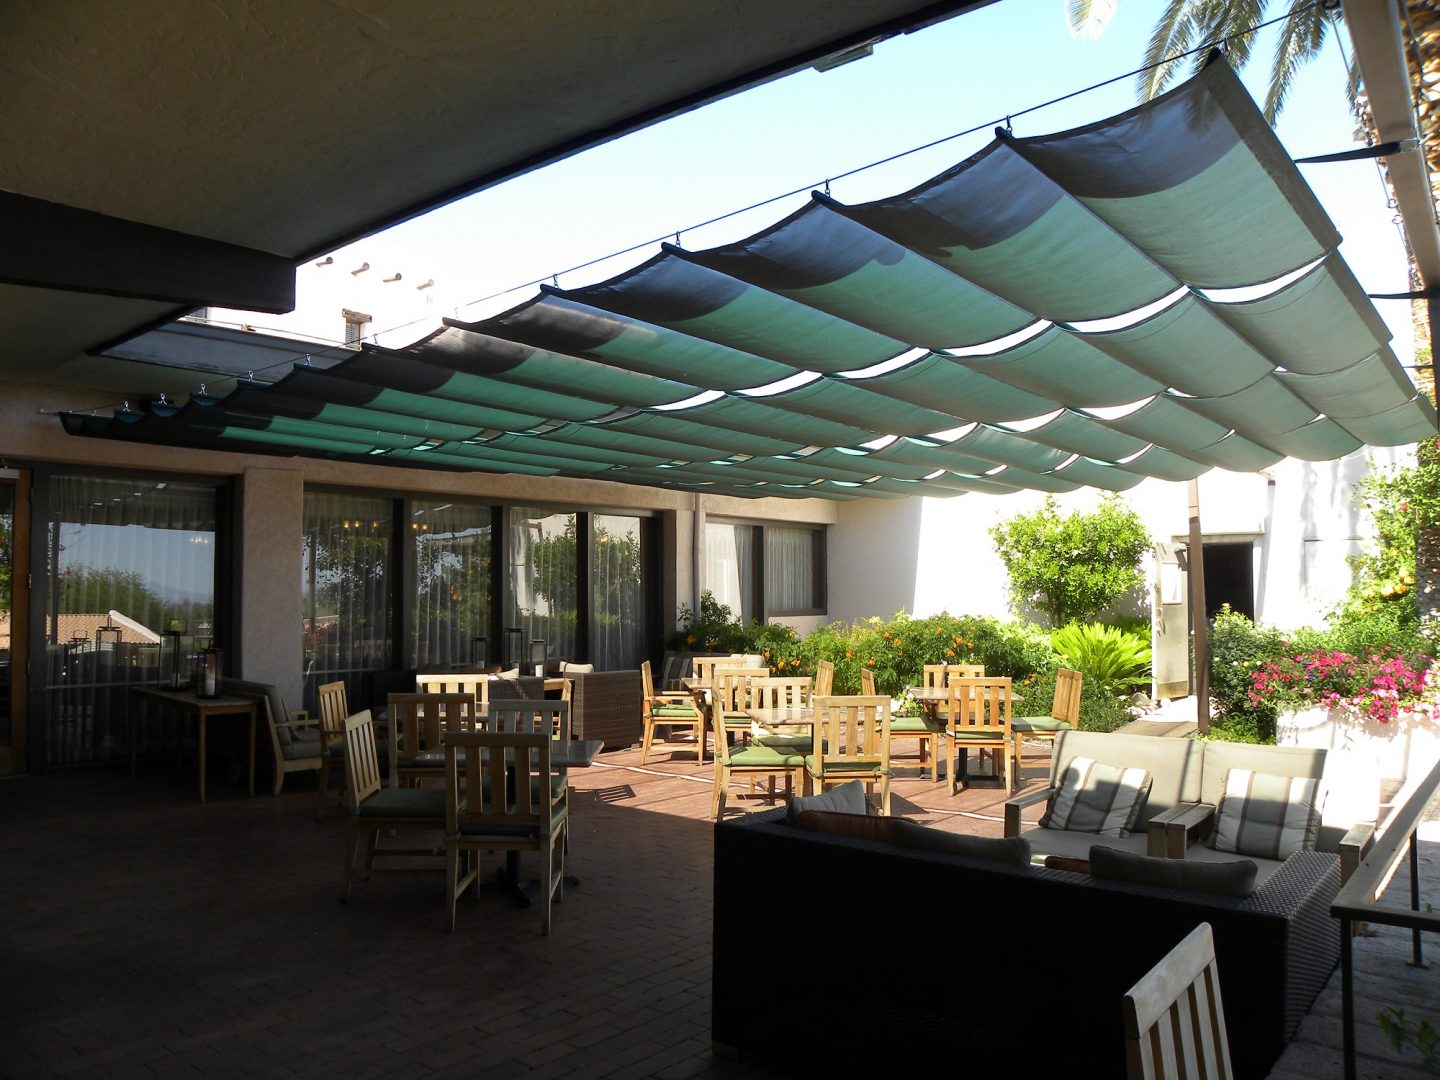 Commercial Retractable Awnings For Your Business